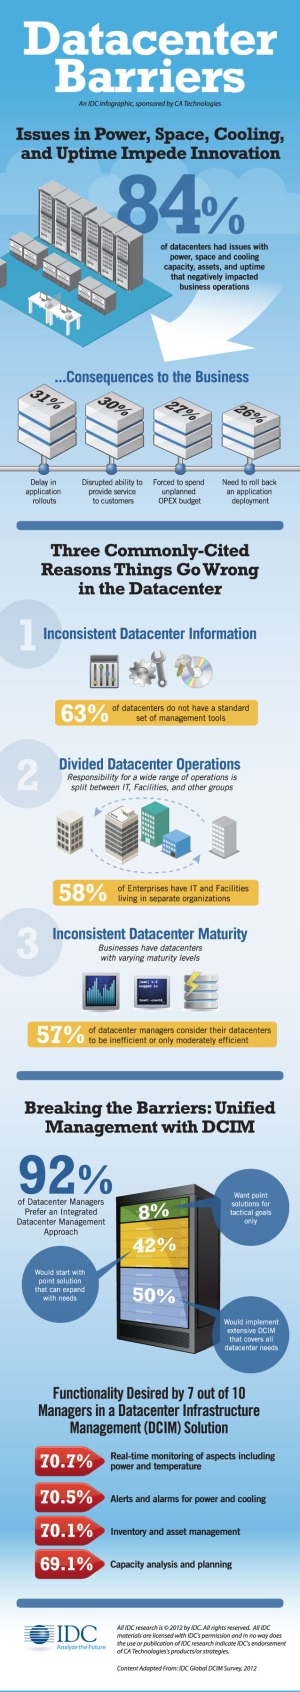 Data-Center-Barriers-Infographic